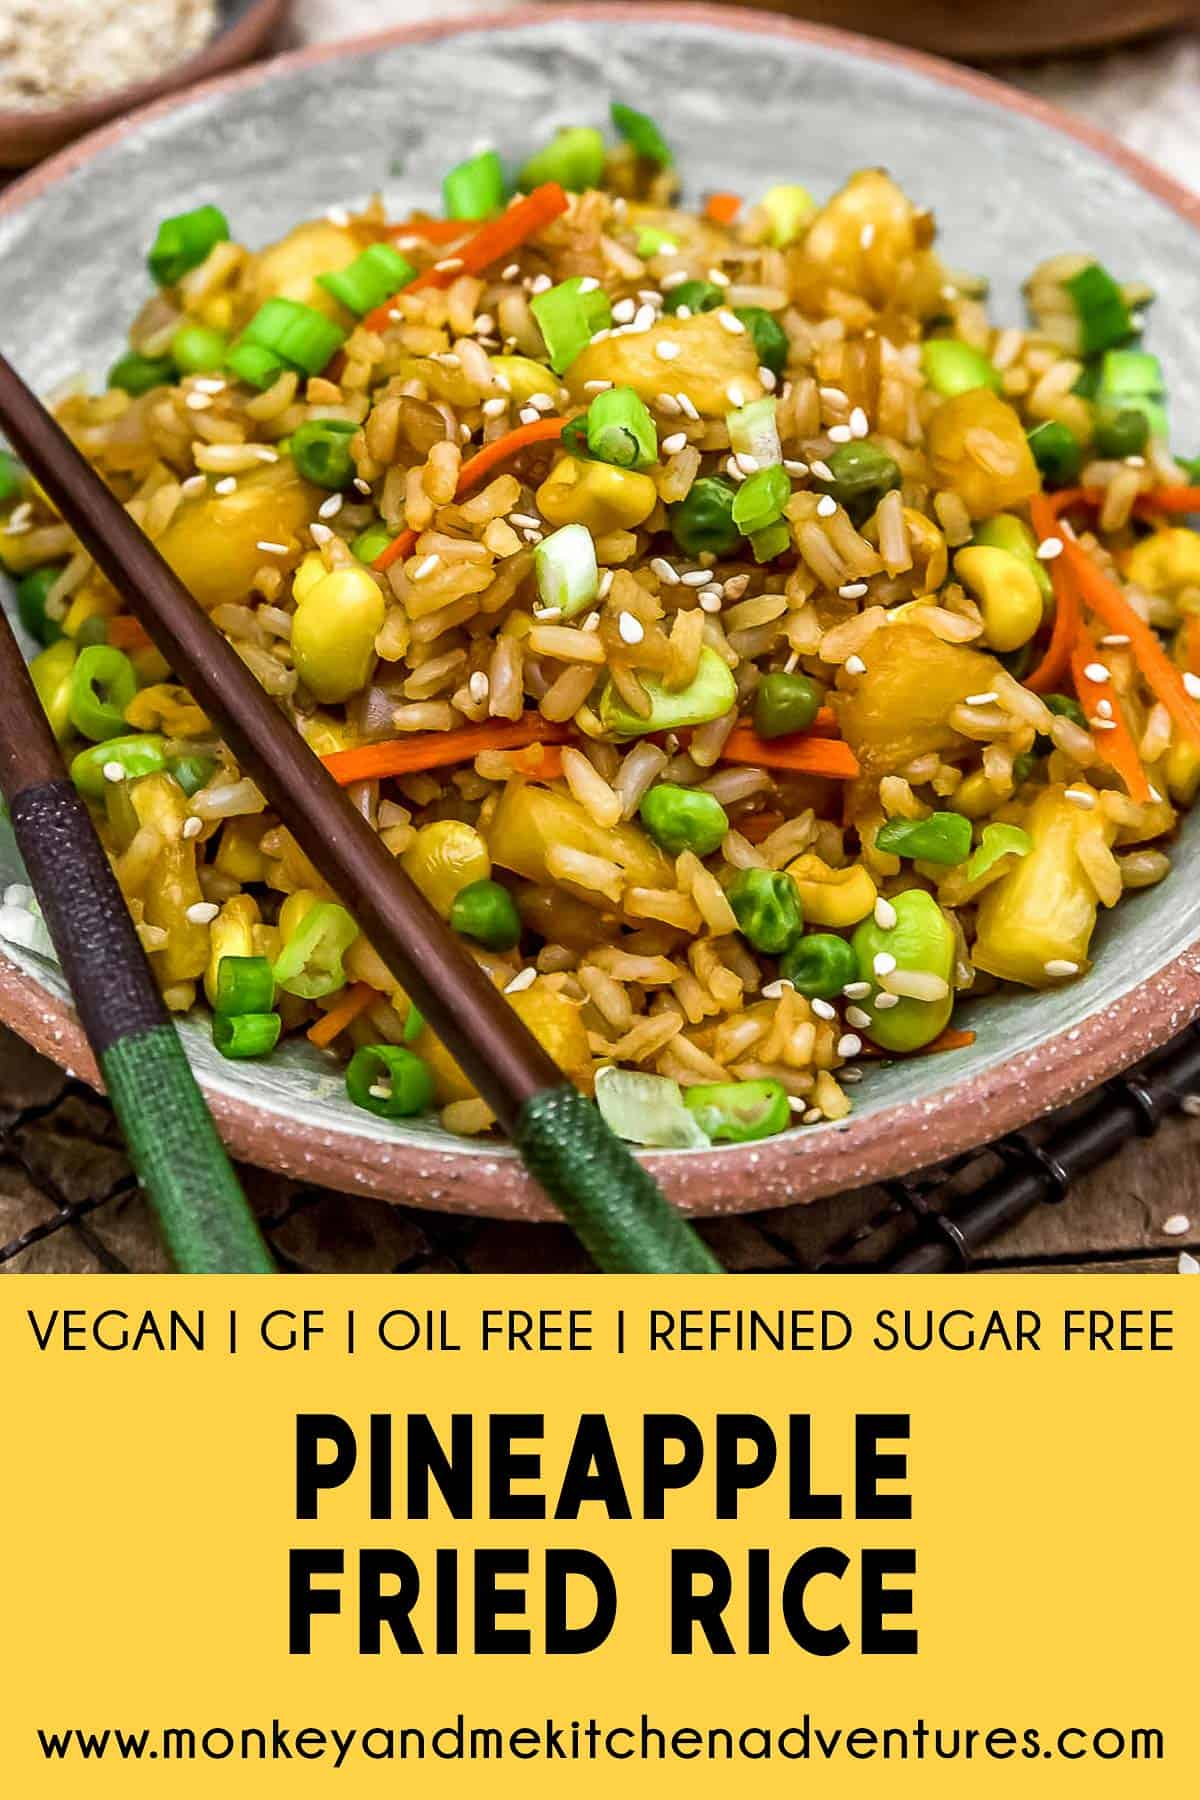 Pineapple Fried Rice with Text Description